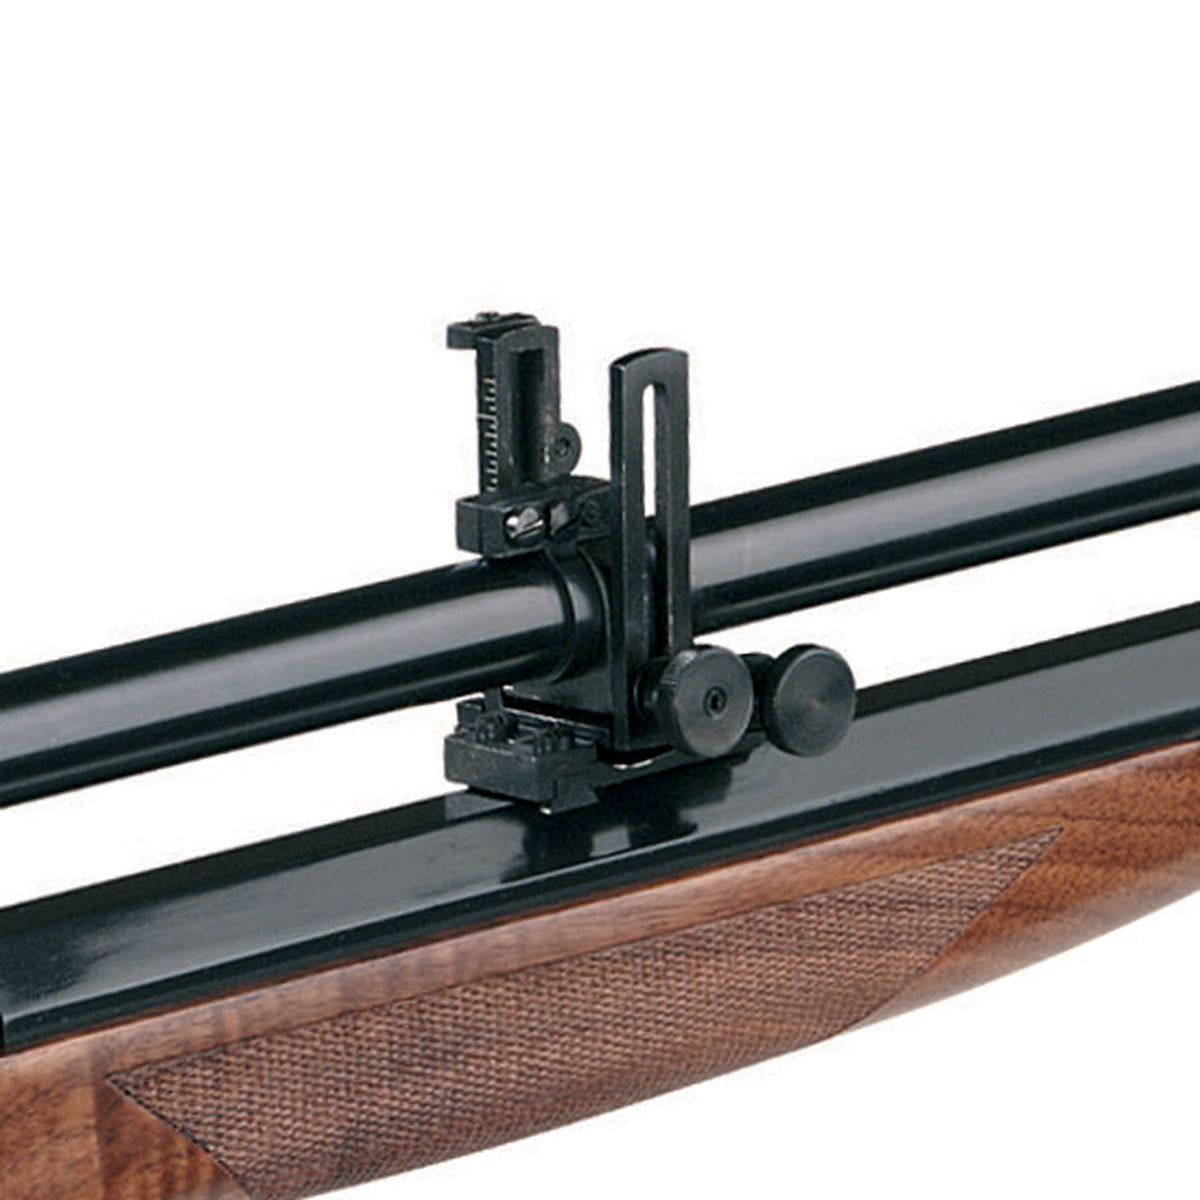 The rear mount of the 6X Long Malcolm scope, showing the dovetail placement